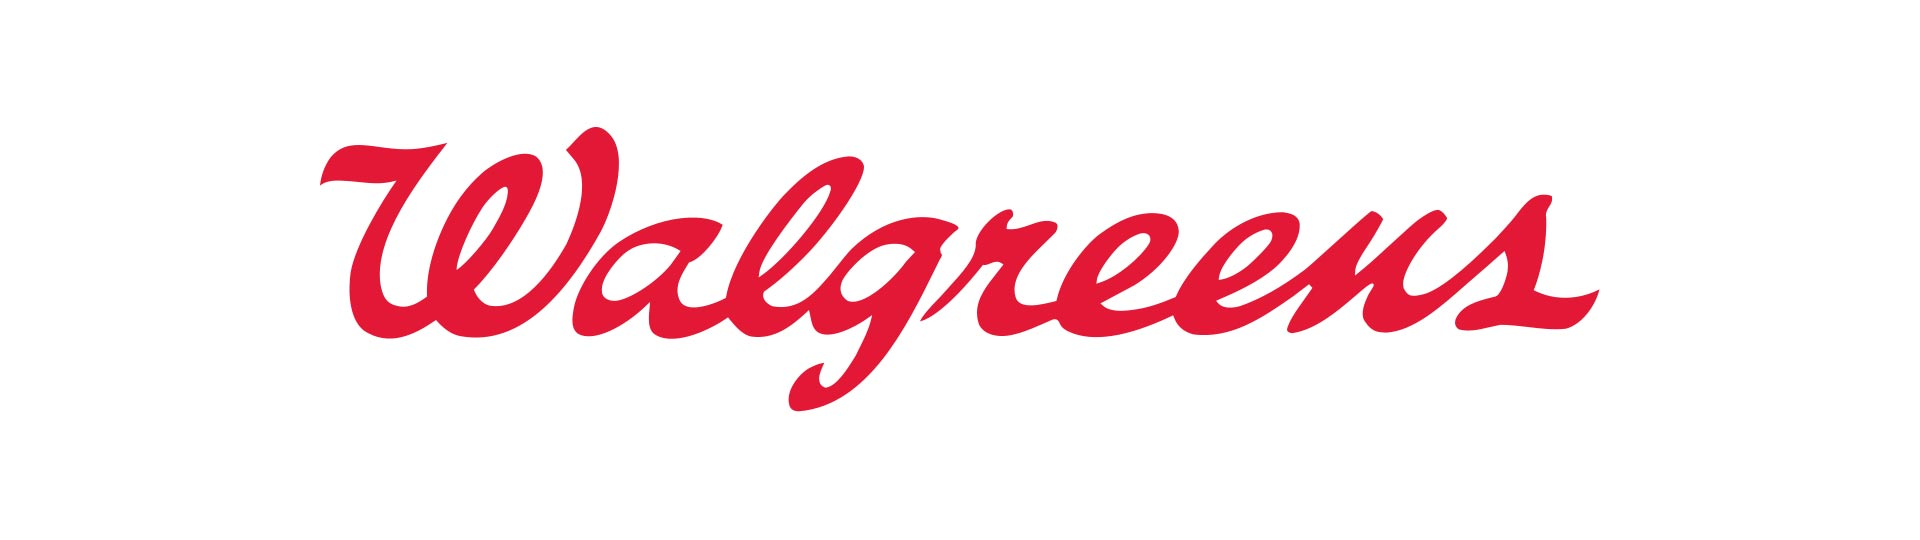 Walgreens Crosses the Cannabis Rubicon